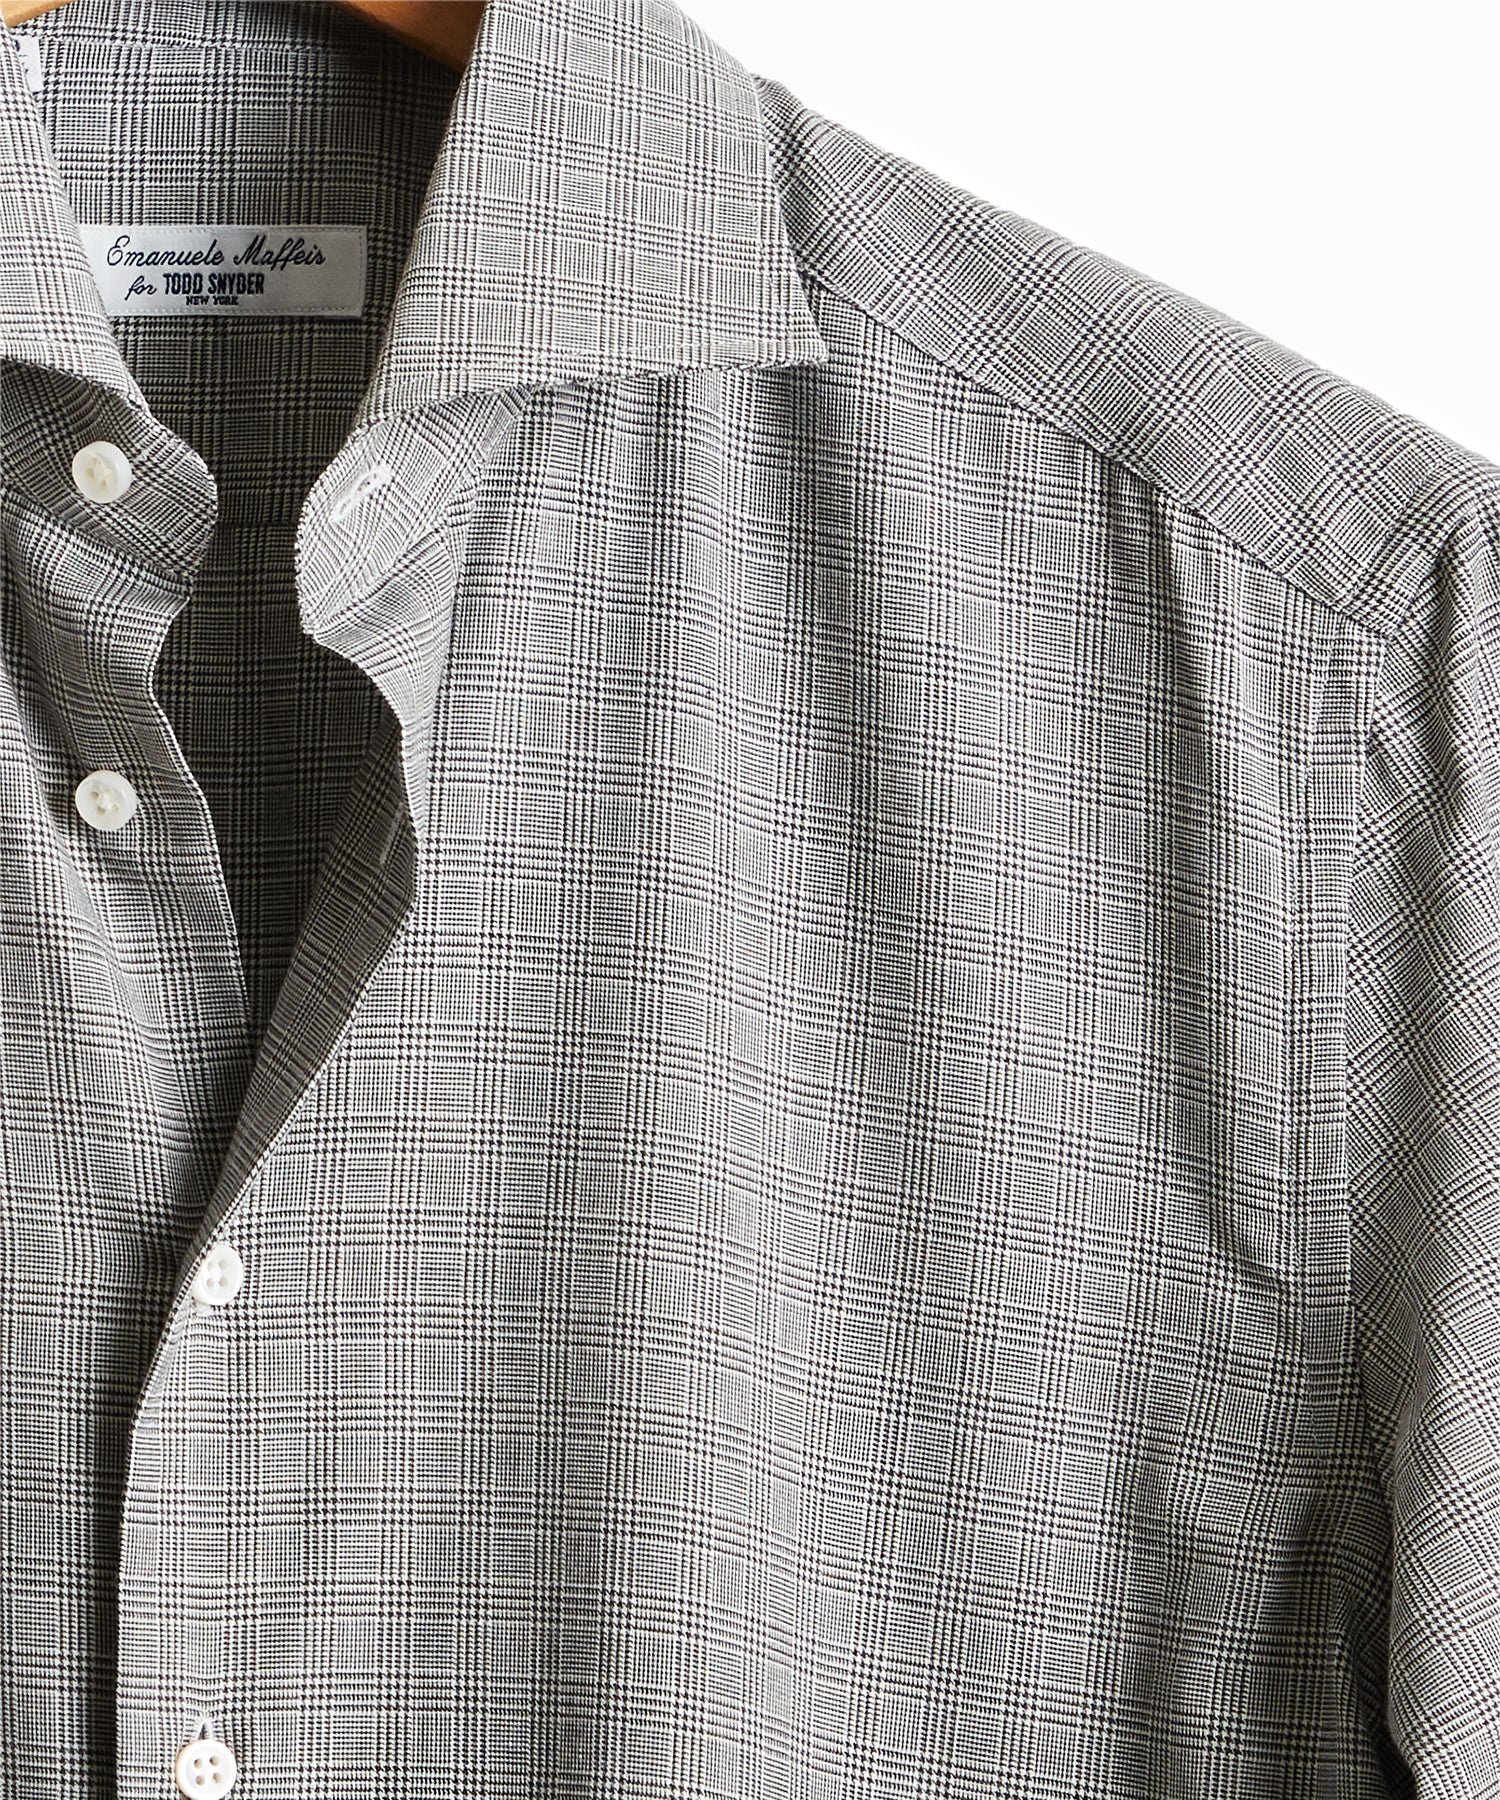 Camiceria E. Maffeis Dress Shirt in Grey Glenn Plaid